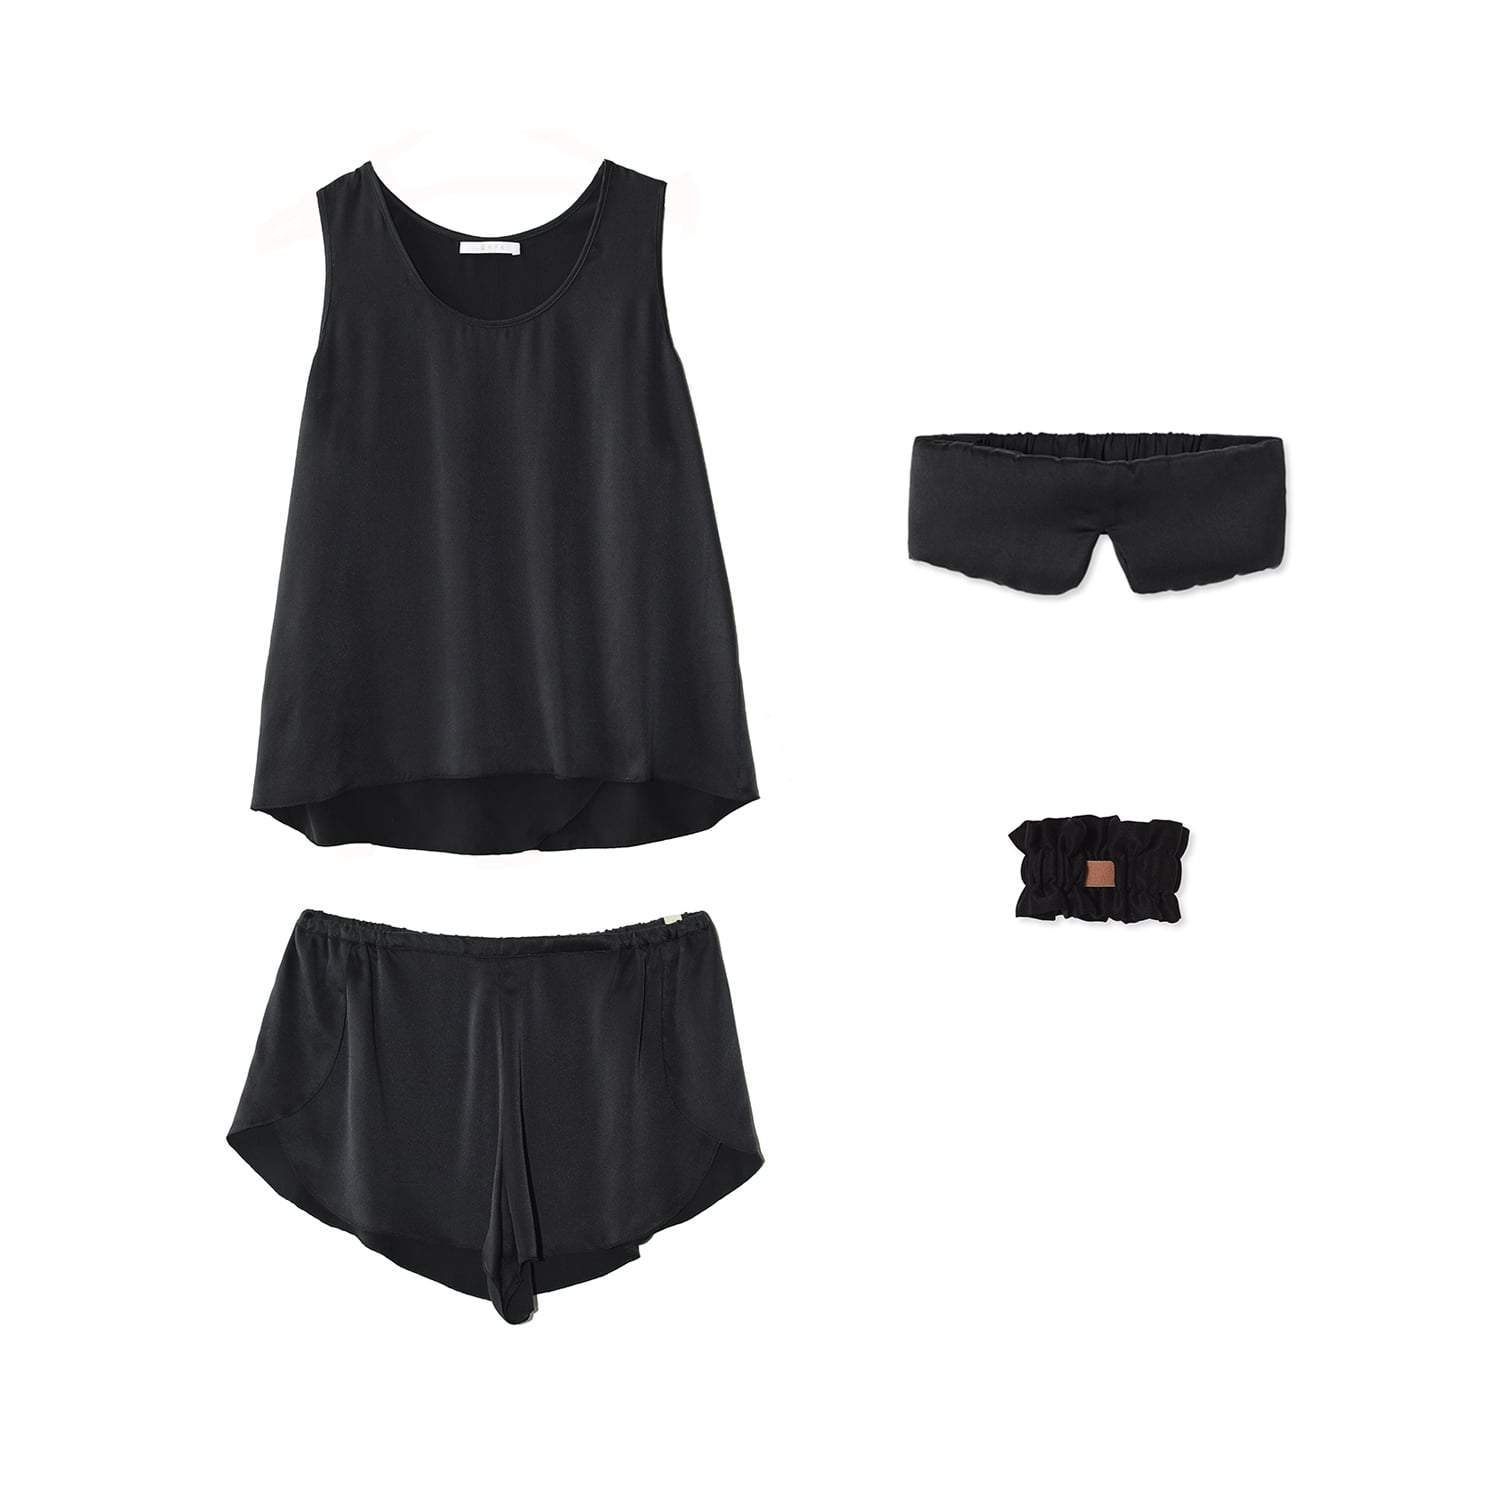 Lunya Sleepwear Washable Silk Dream Kit - #Washed Black